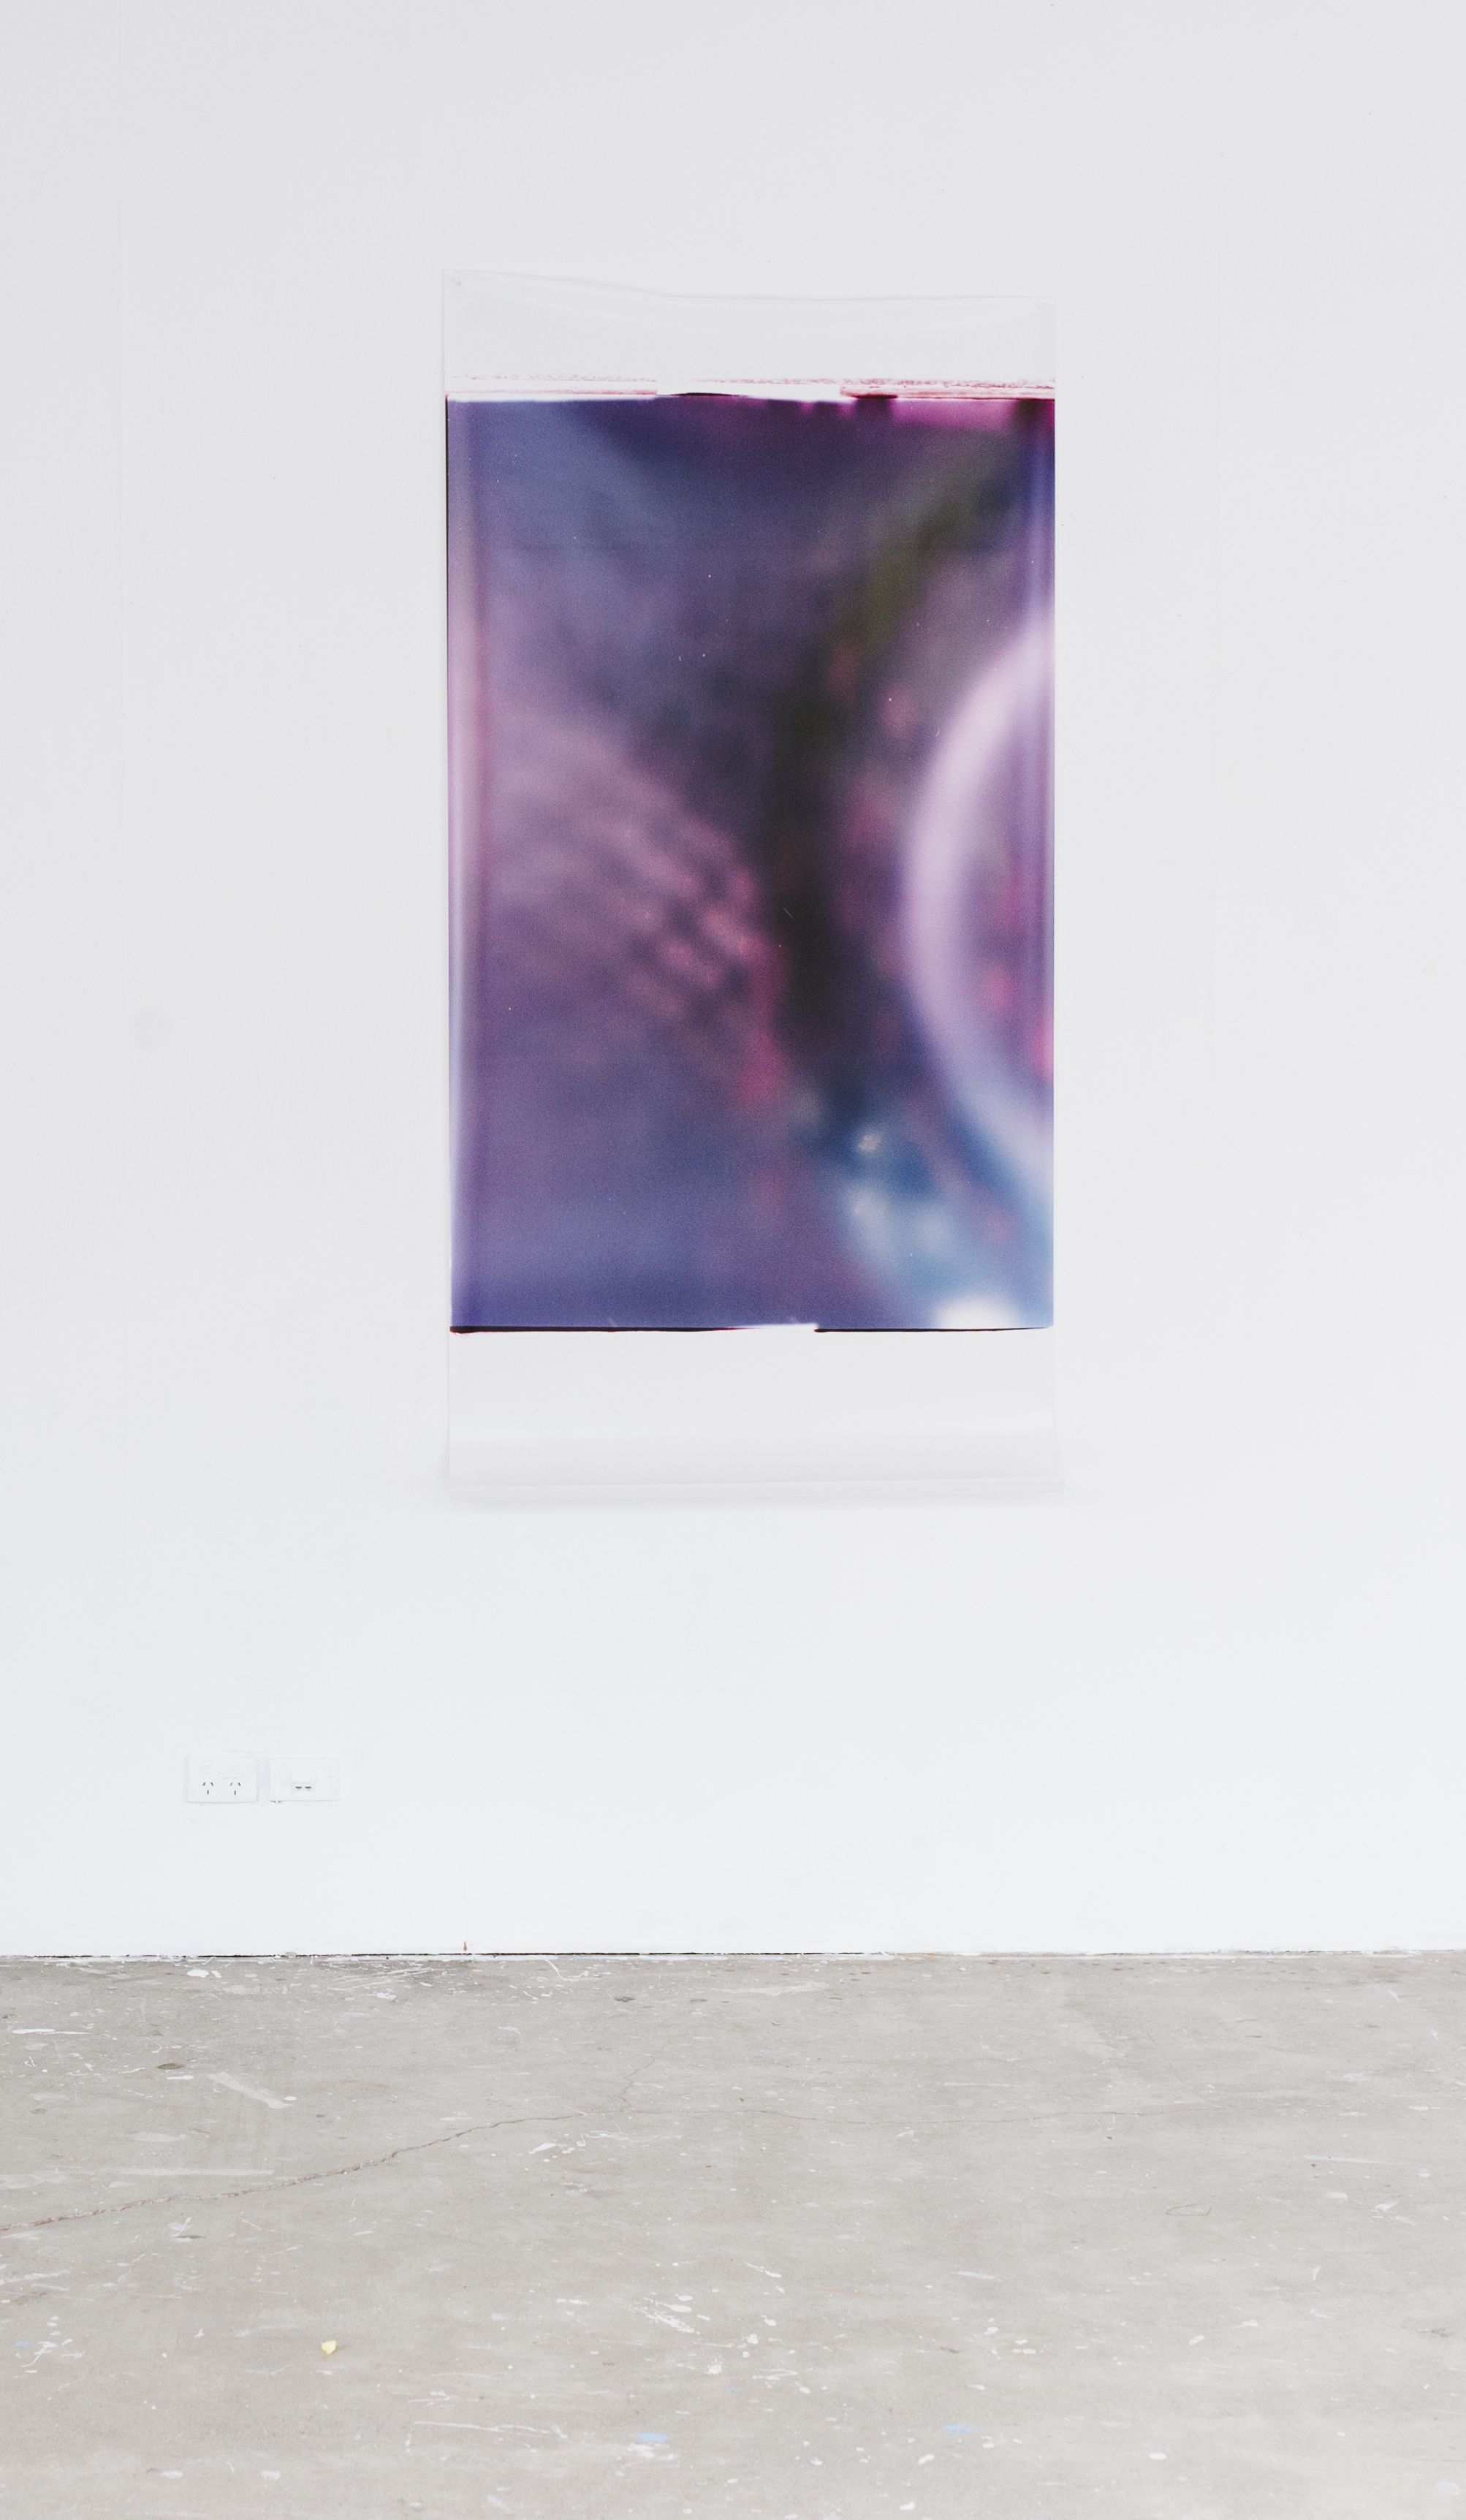 Untitled (Purple), Conflict of Interests, VCA Student Gallery, 2015